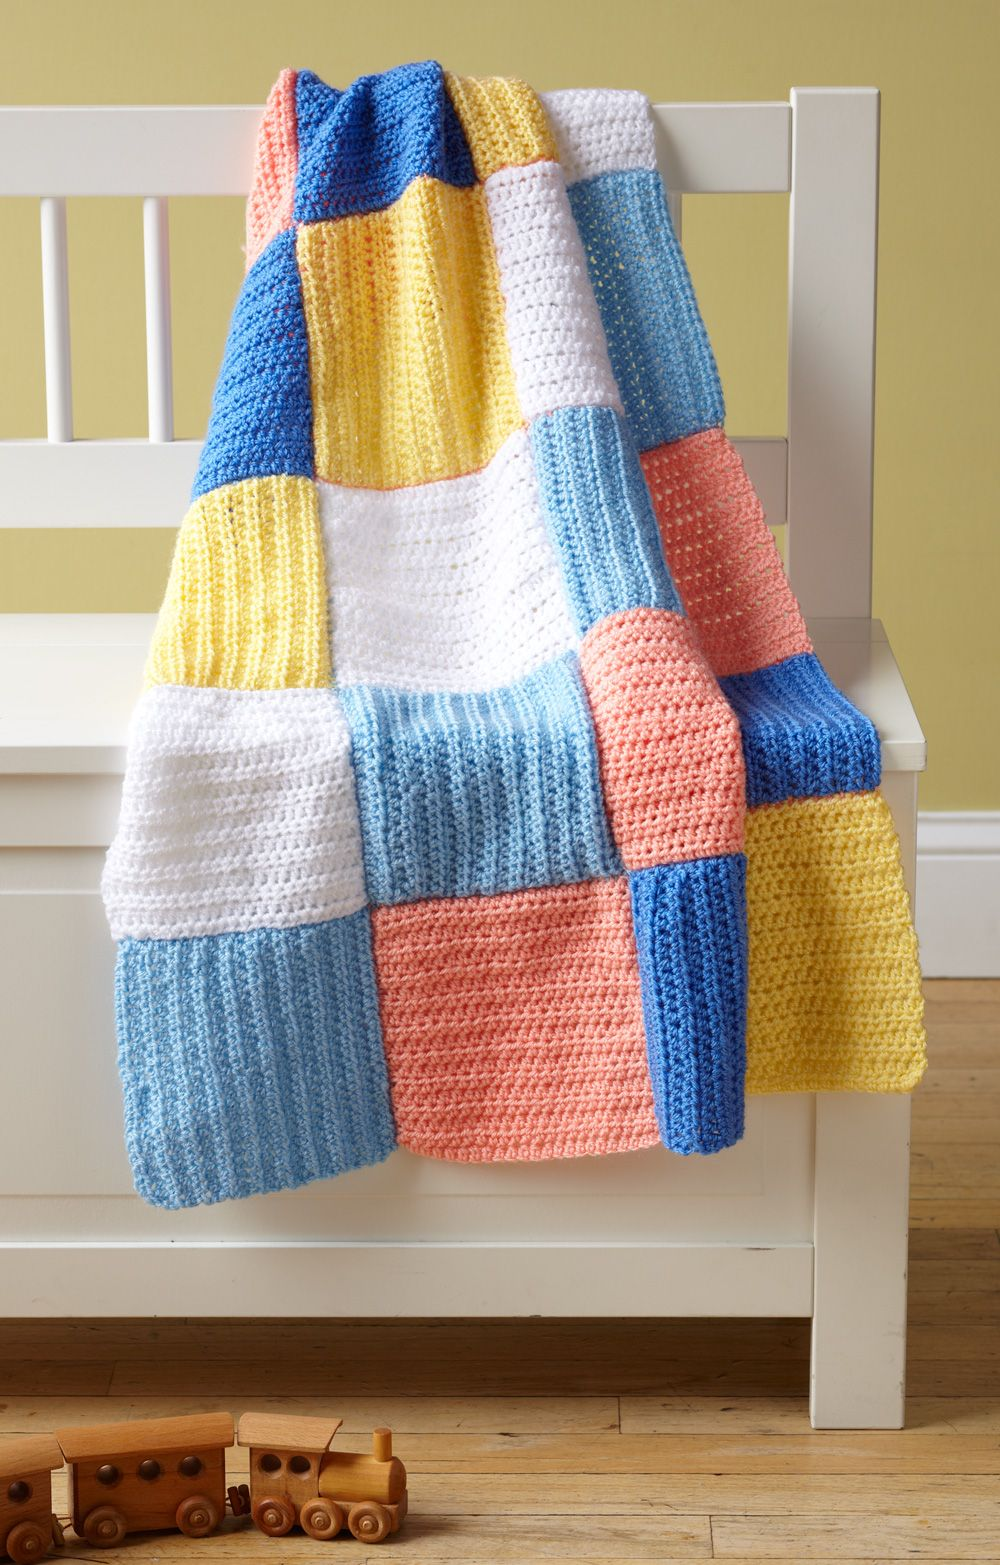 Beginner crochet baby afghan pattern afghans find this pin and more on crochet projects to try ravelry beginner crochet baby afghan pattern bankloansurffo Images